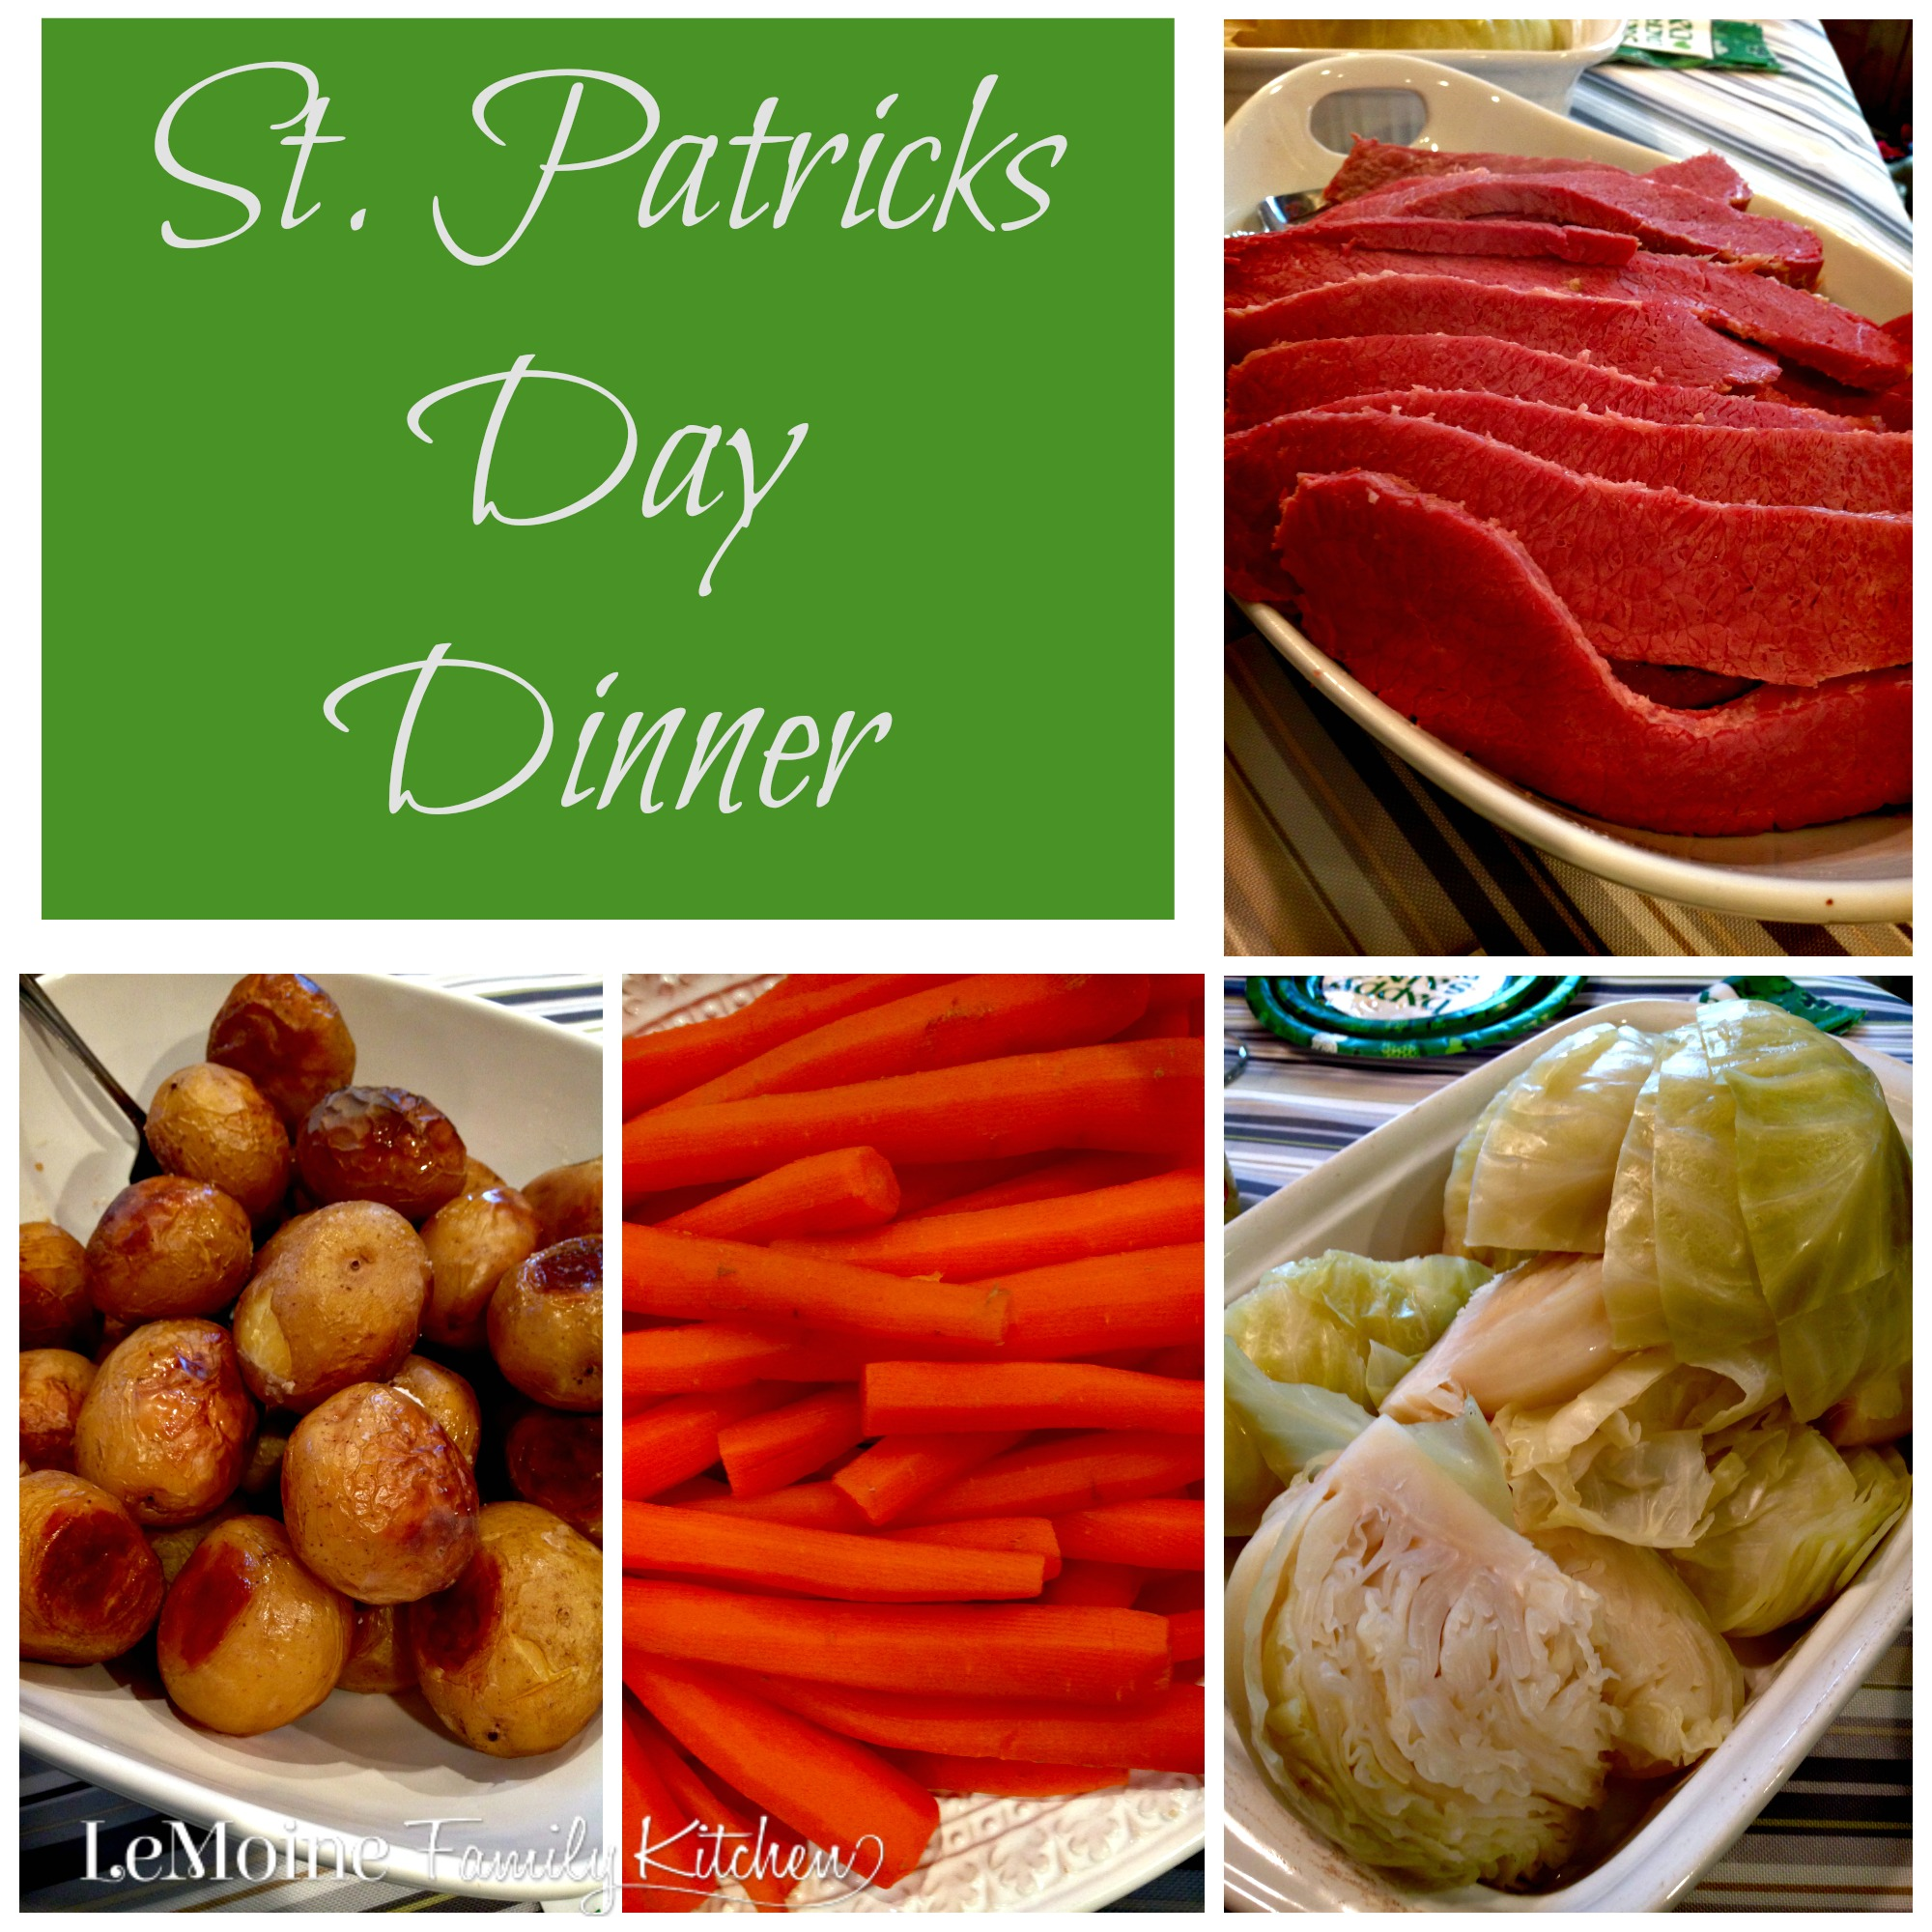 St Patricks Day Dinner | LeMoine Family Kitchen . Everything you need to know to prepare a delicious and simple St Patricks Day Dinner!